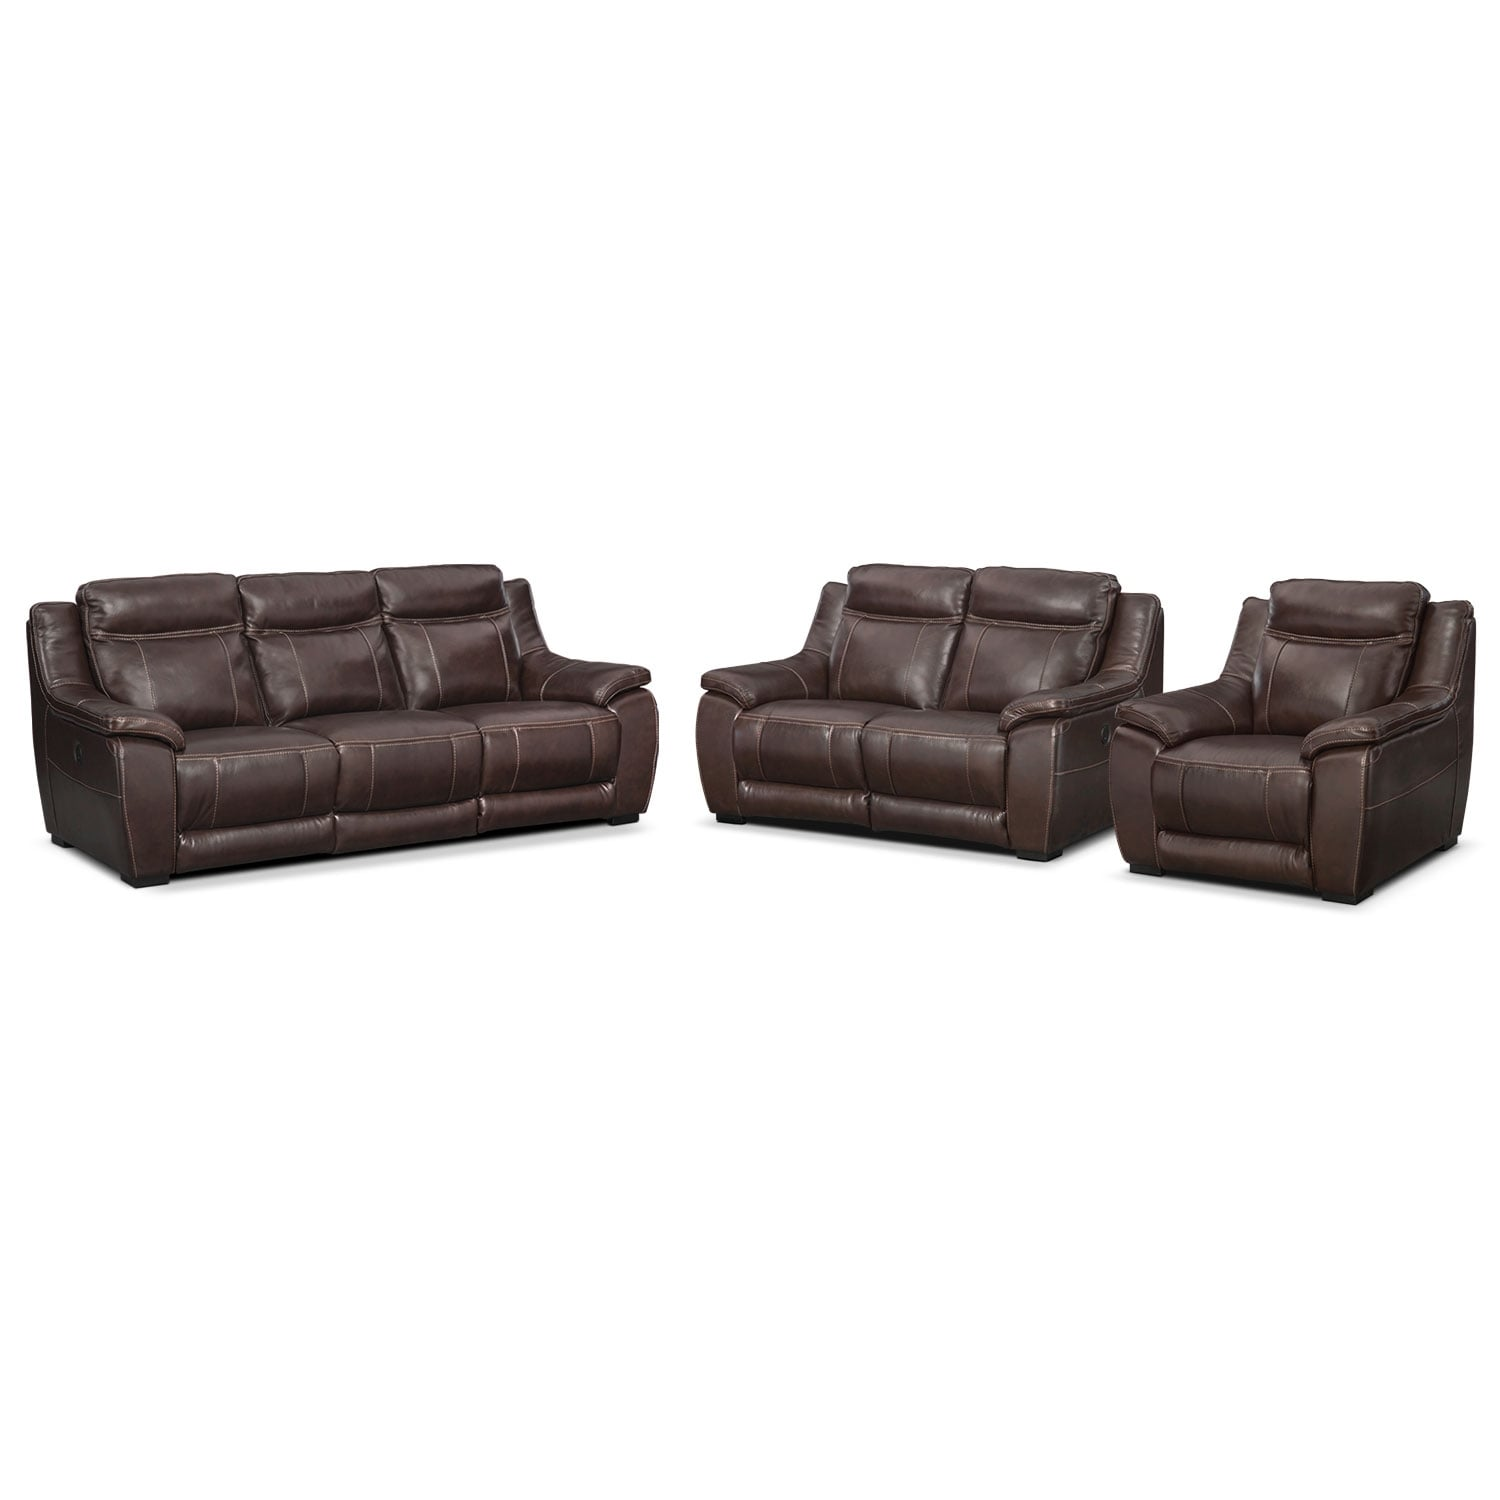 Living Room Furniture - Lido Power Reclining Sofa, Reclining Loveseat and Recliner Set - Brown